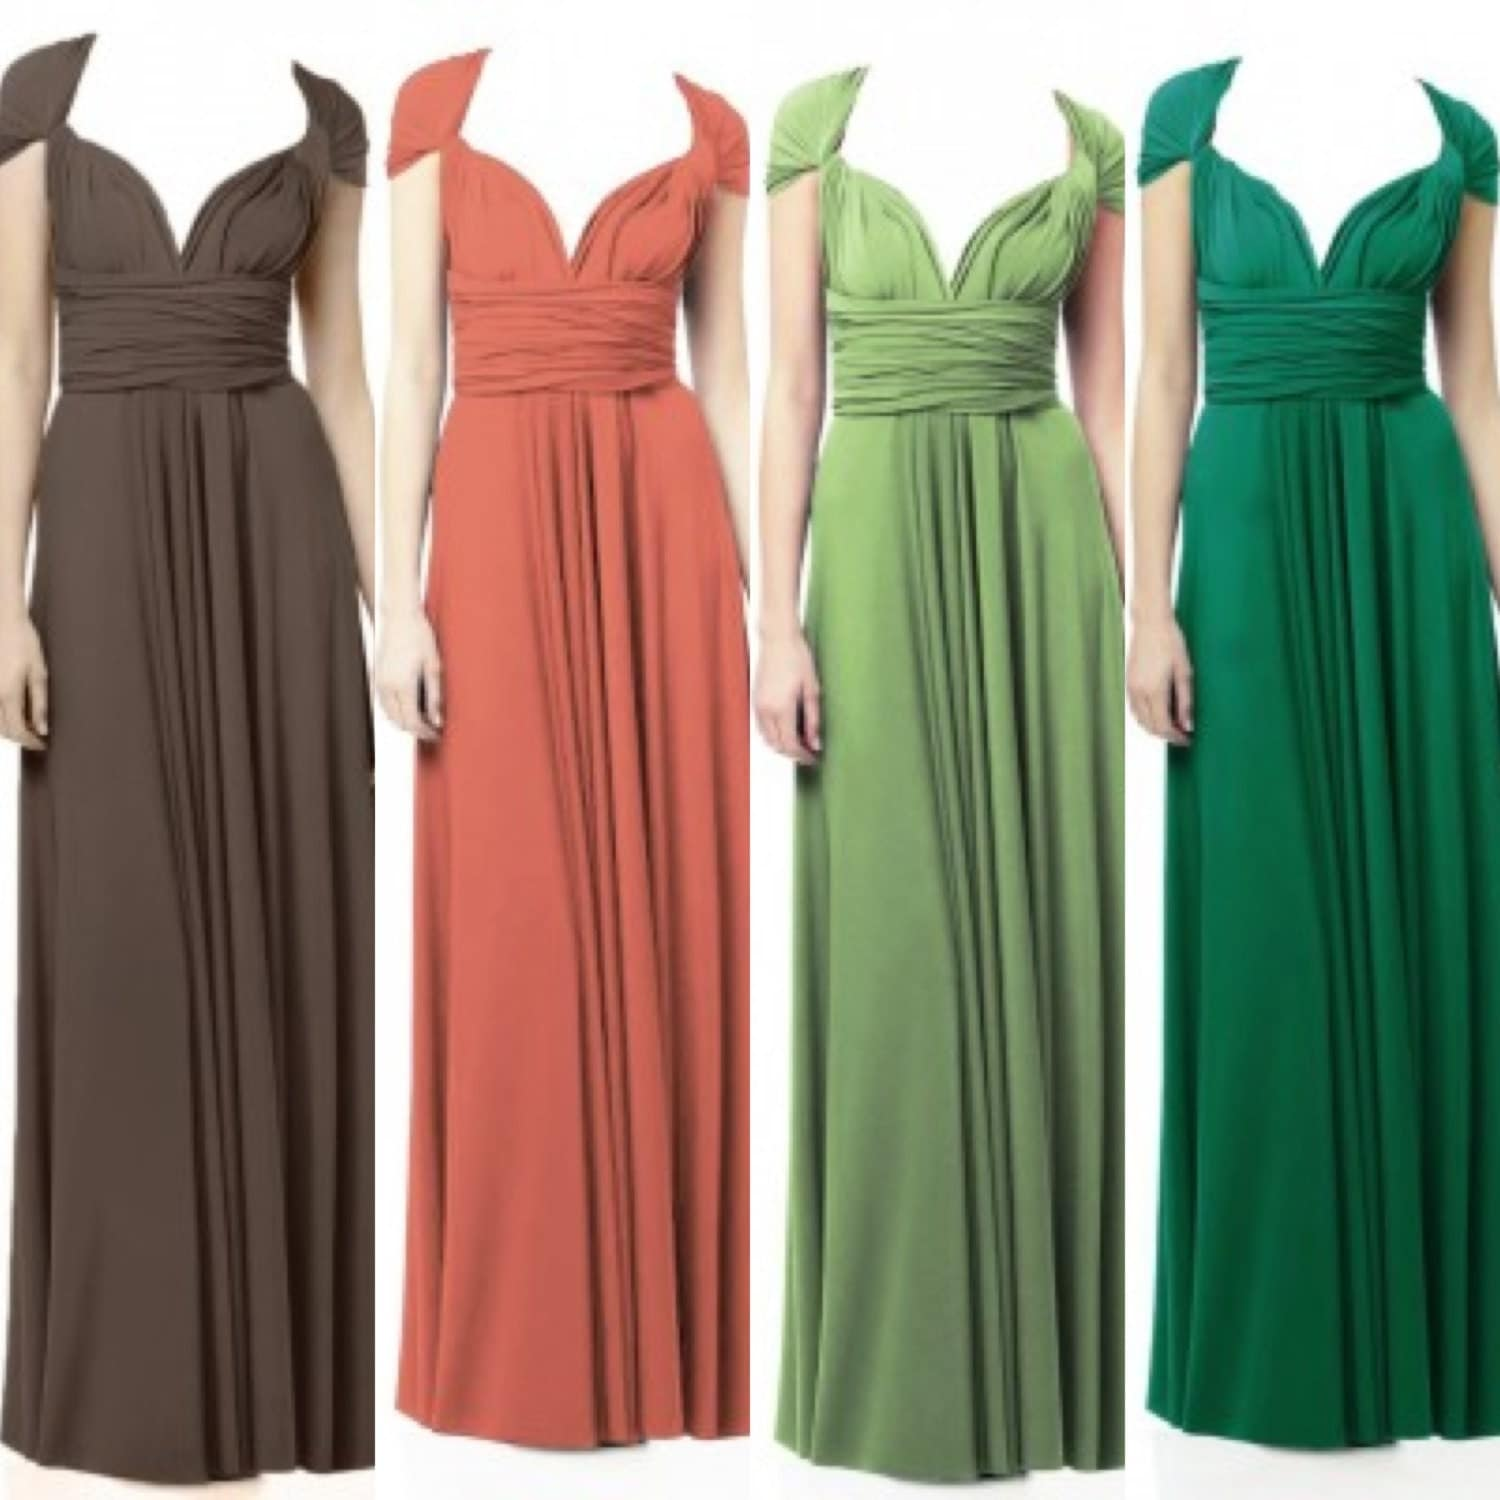 Infinity Wedding Dress Larimeloom: Infinity Dress Bridesmaid Multiway Dress RESERVED LISTING For